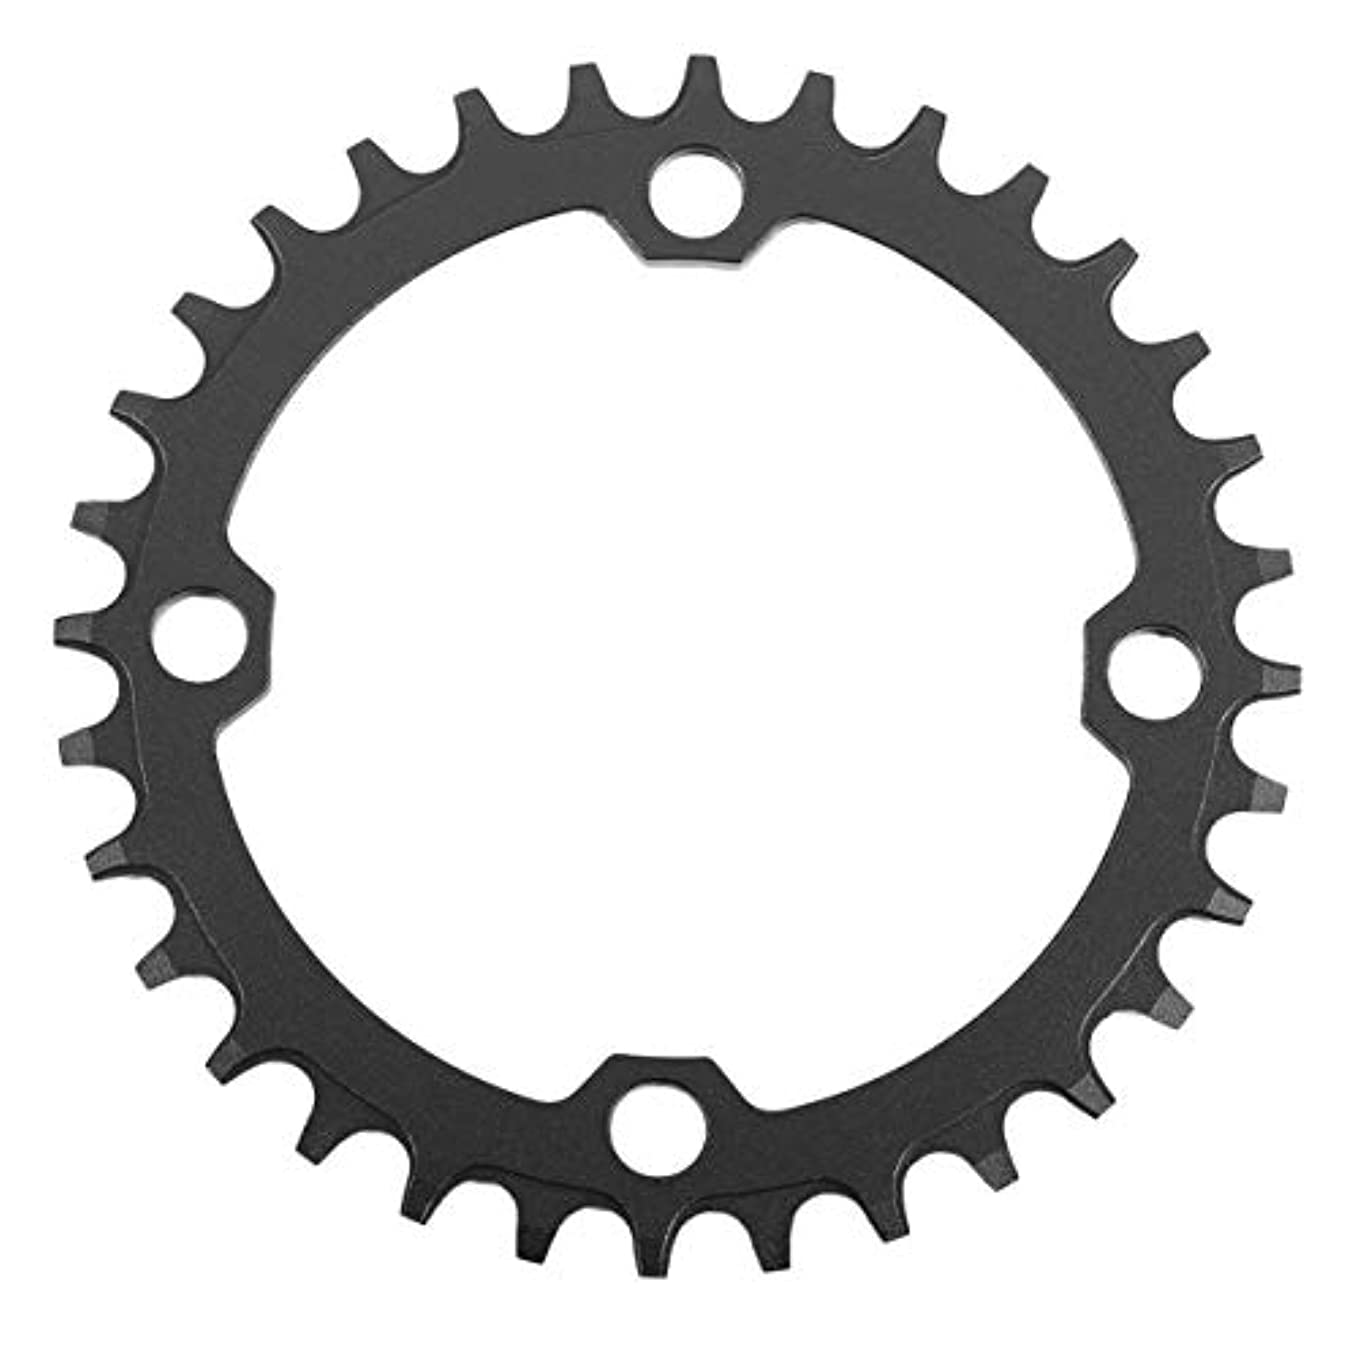 特異性開発略すDECKAS Narrow Wide Bike MTB Crank Round Oval Chainring Chain Ring自転車Chainwheel Bike Circle Single Plate-ブラック